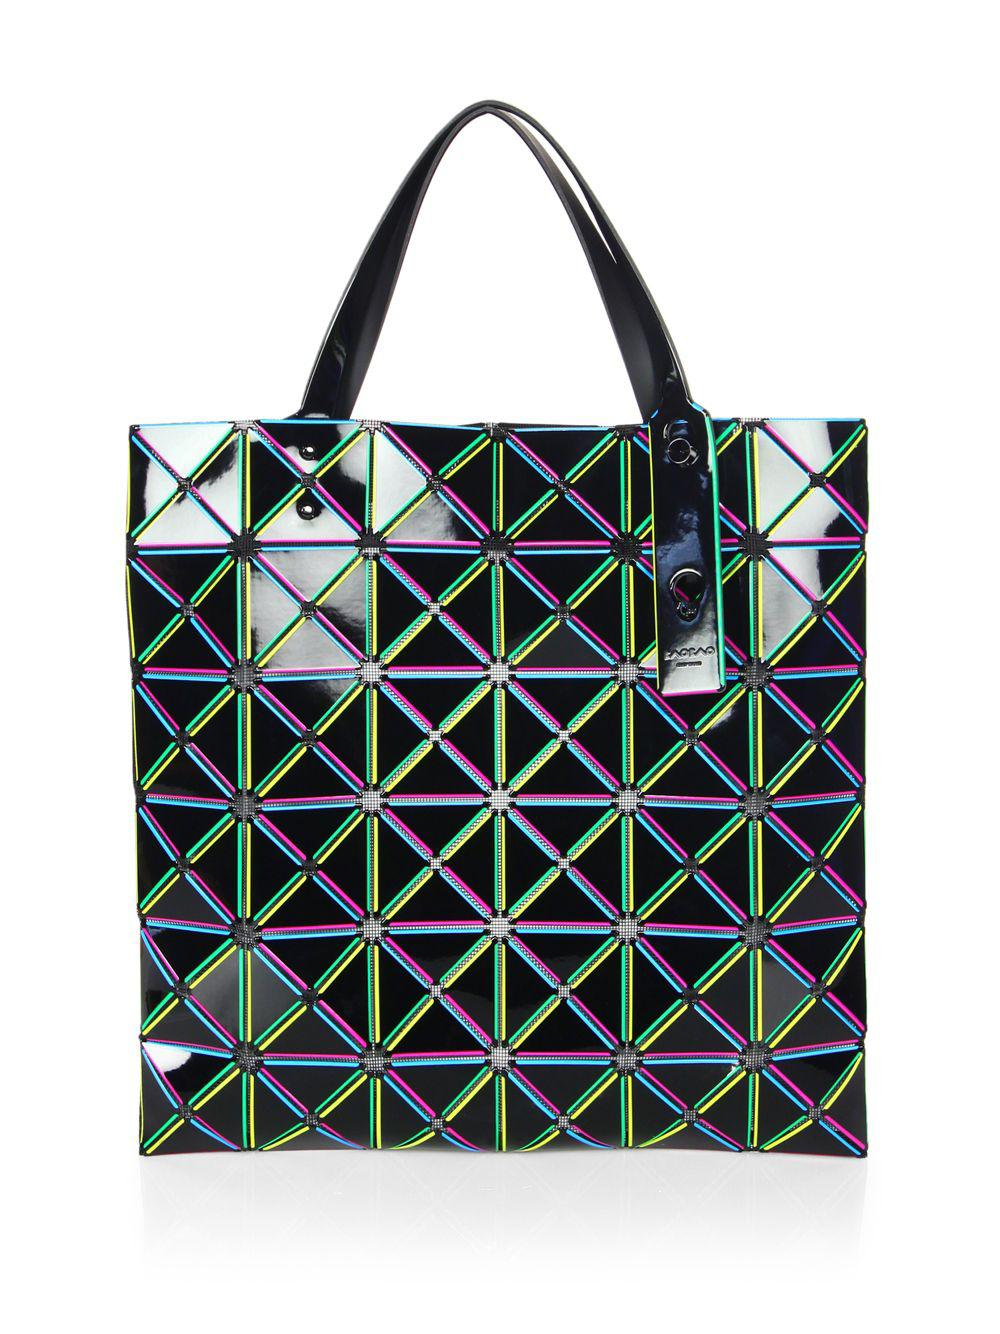 86a650532394 Lyst - Bao Bao Issey Miyake Lucent Comet Tote in Black - Save 40%